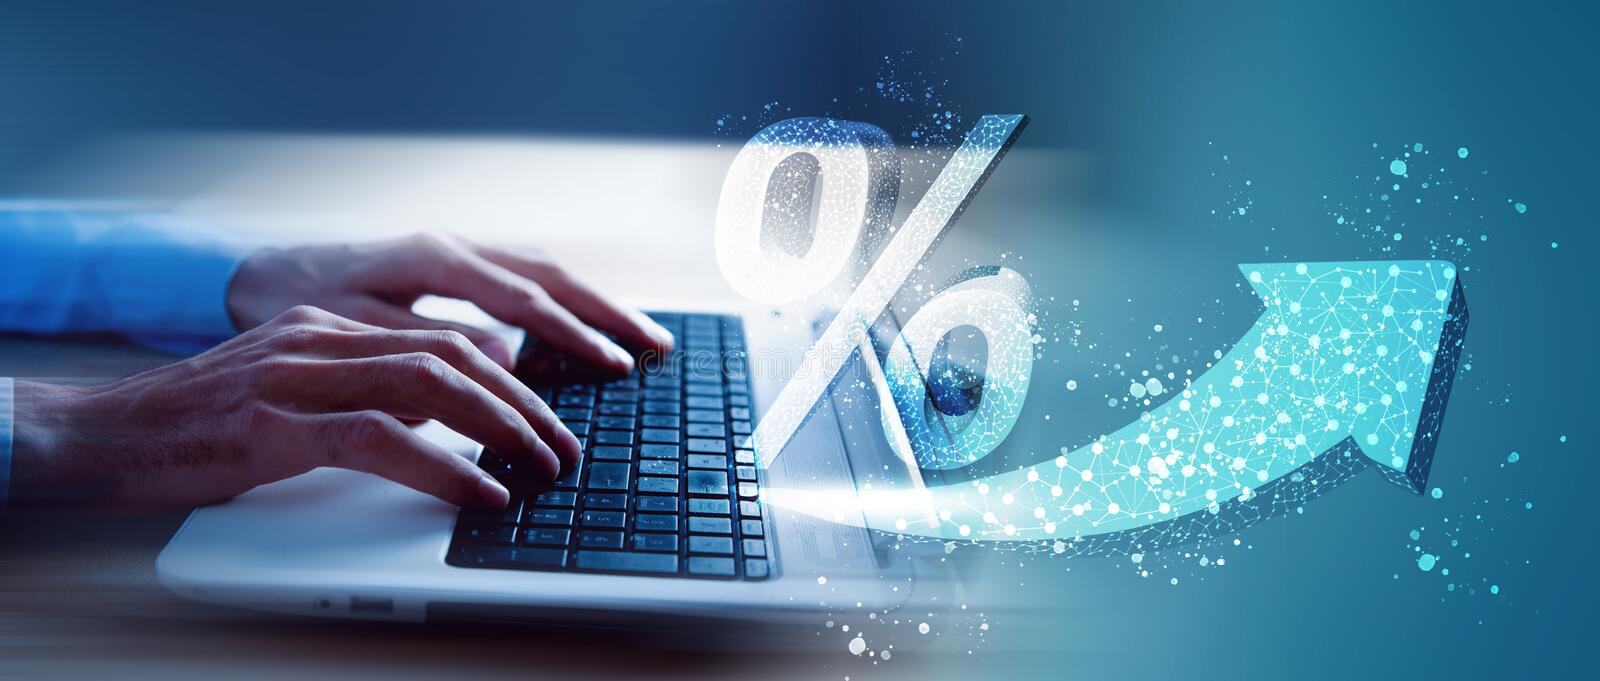 High percent interest. Percent up icon royalty free stock images